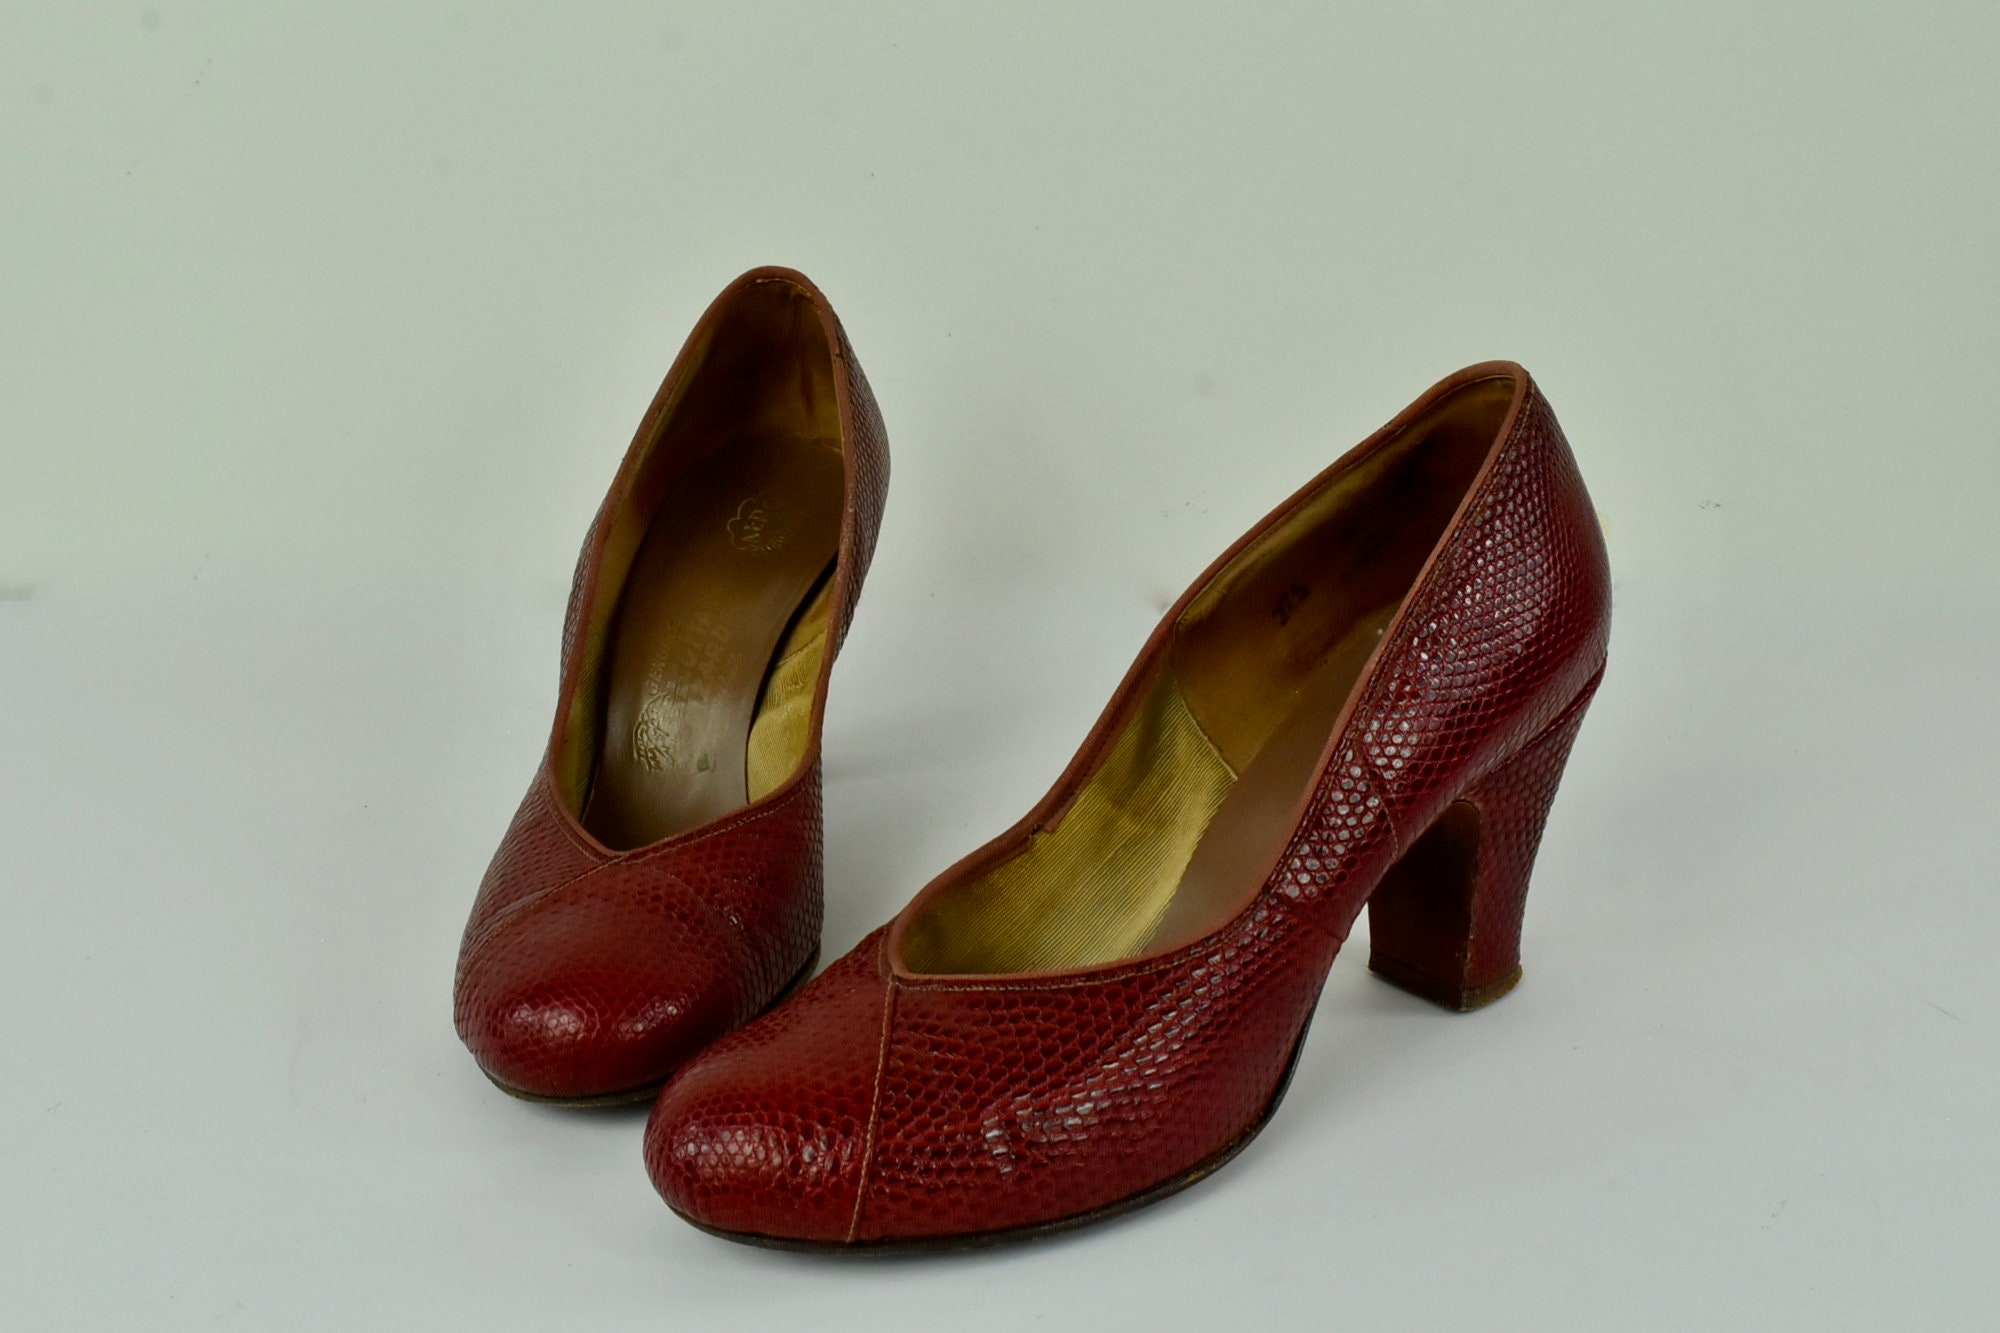 1930s Handbags and Purses Fashion 1950S Red Lizard Heels ... Sensational ...perfect For 1930-50S Fashionsize 7 5 $250.00 AT vintagedancer.com